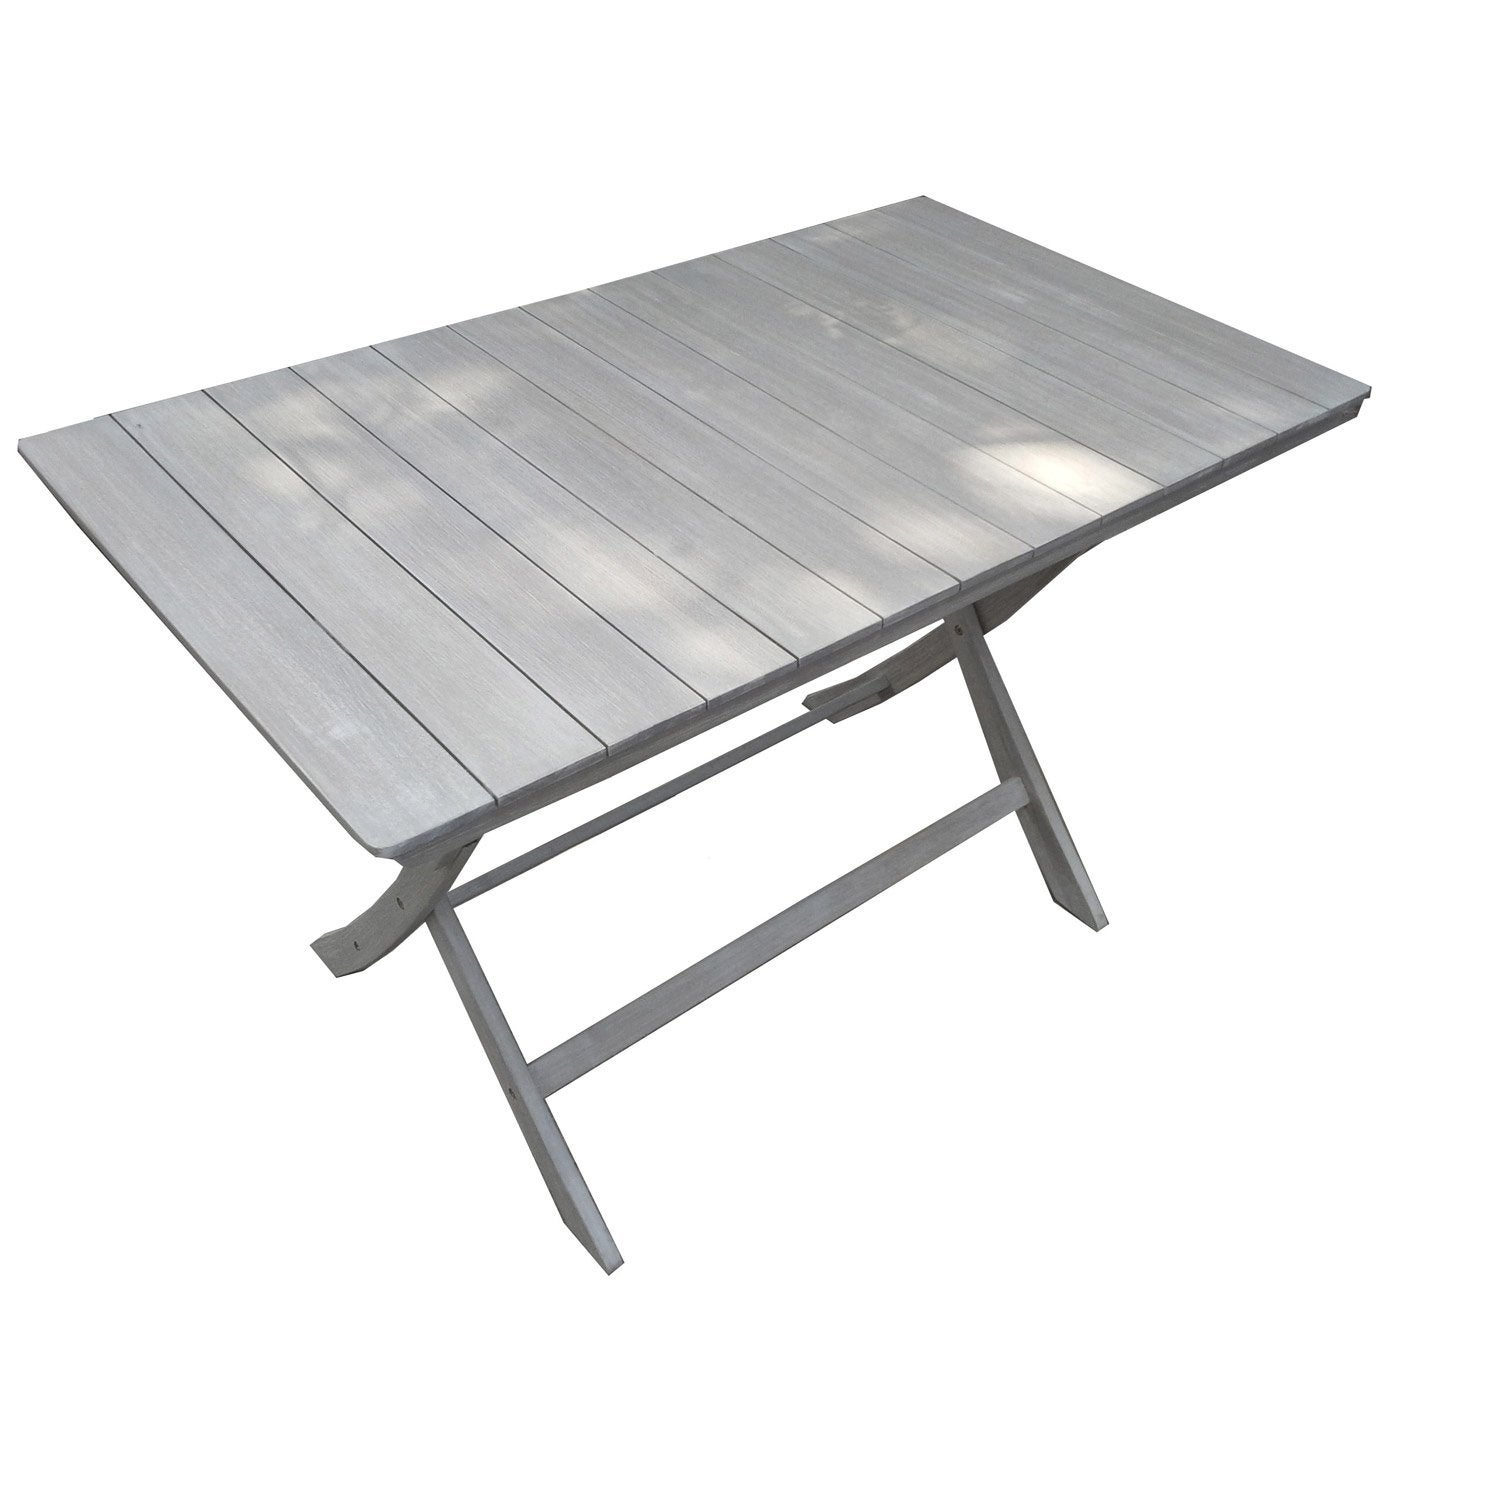 Table de jardin naterial portofino rectangulaire gris 4 personnes leroy merlin - Table de salon pliante ...